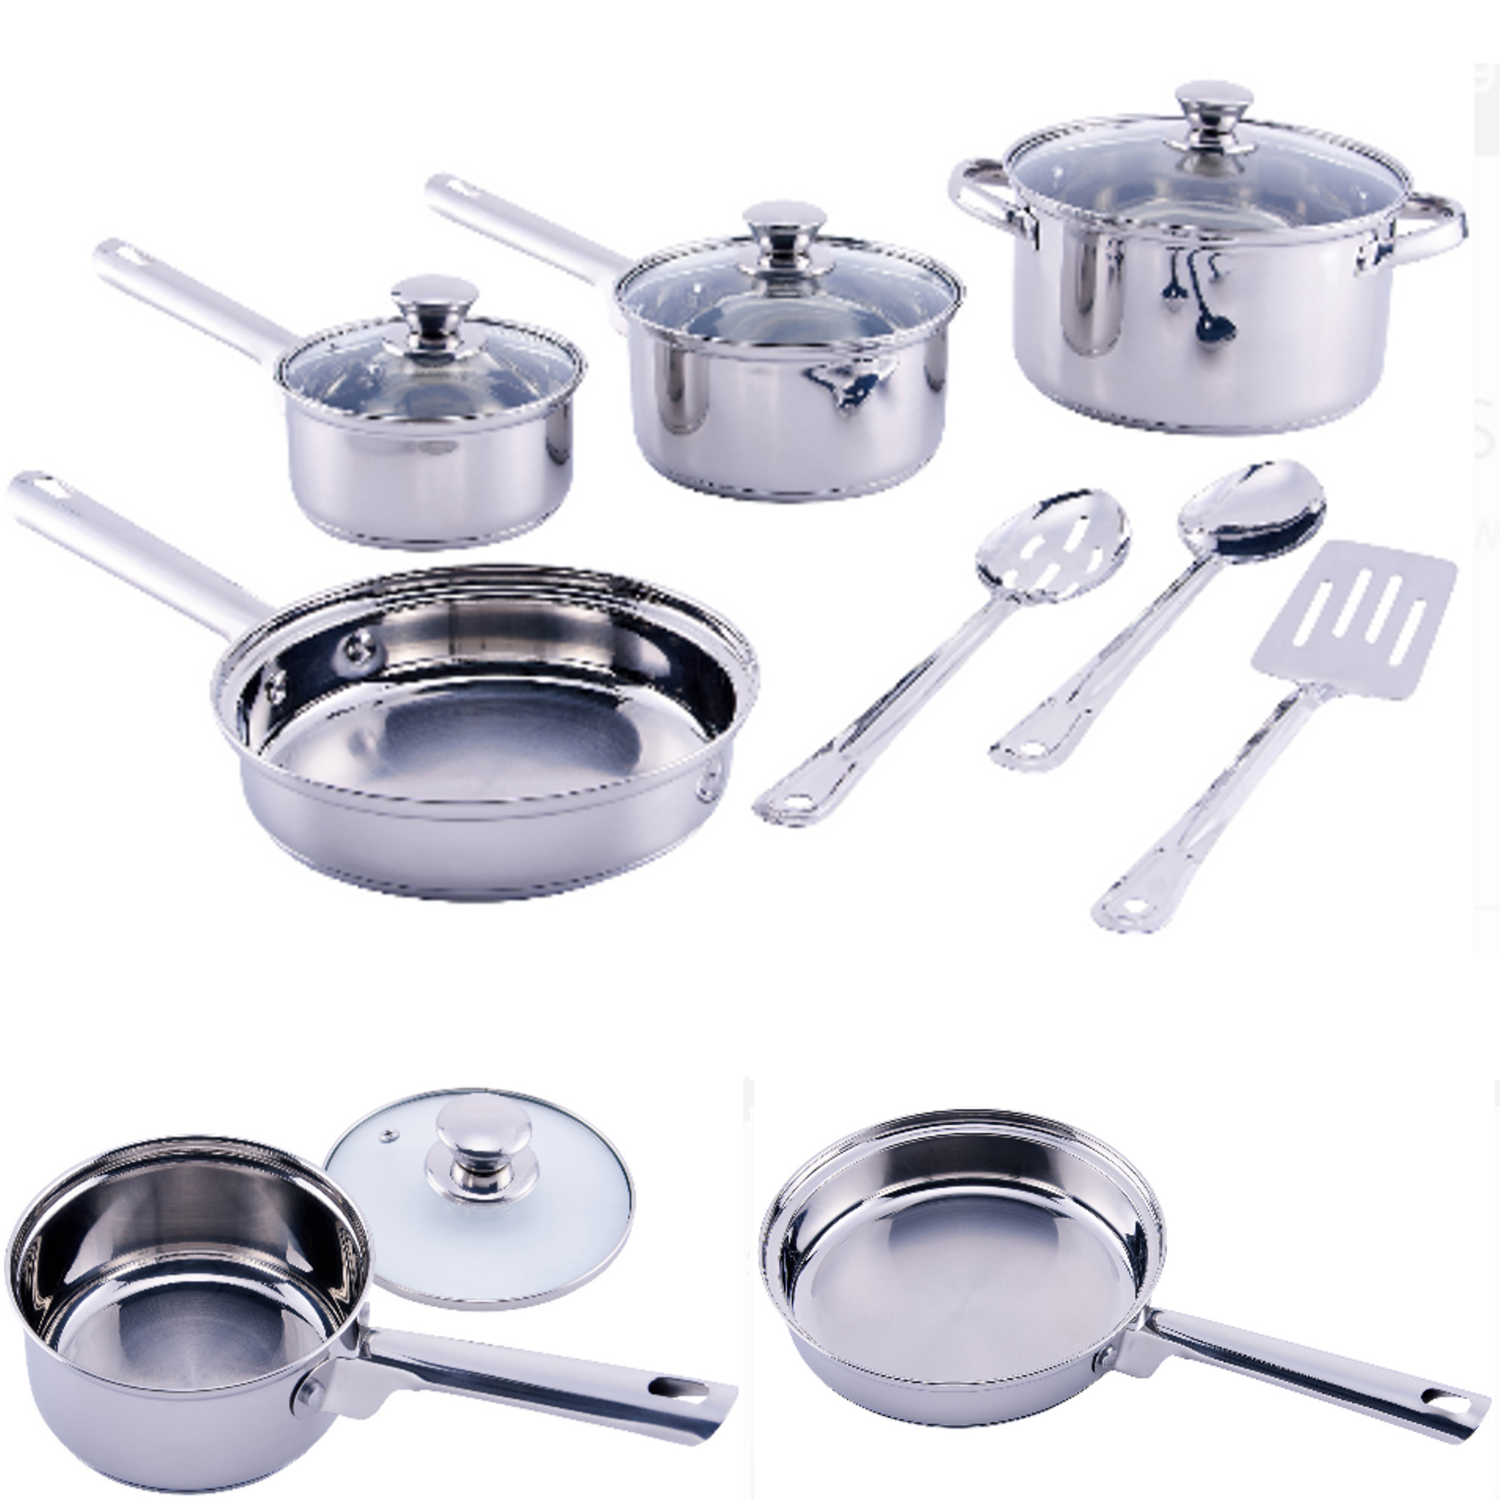 Cookware Set Stainless Steel Kitchen Cooking Pots Pans Lids